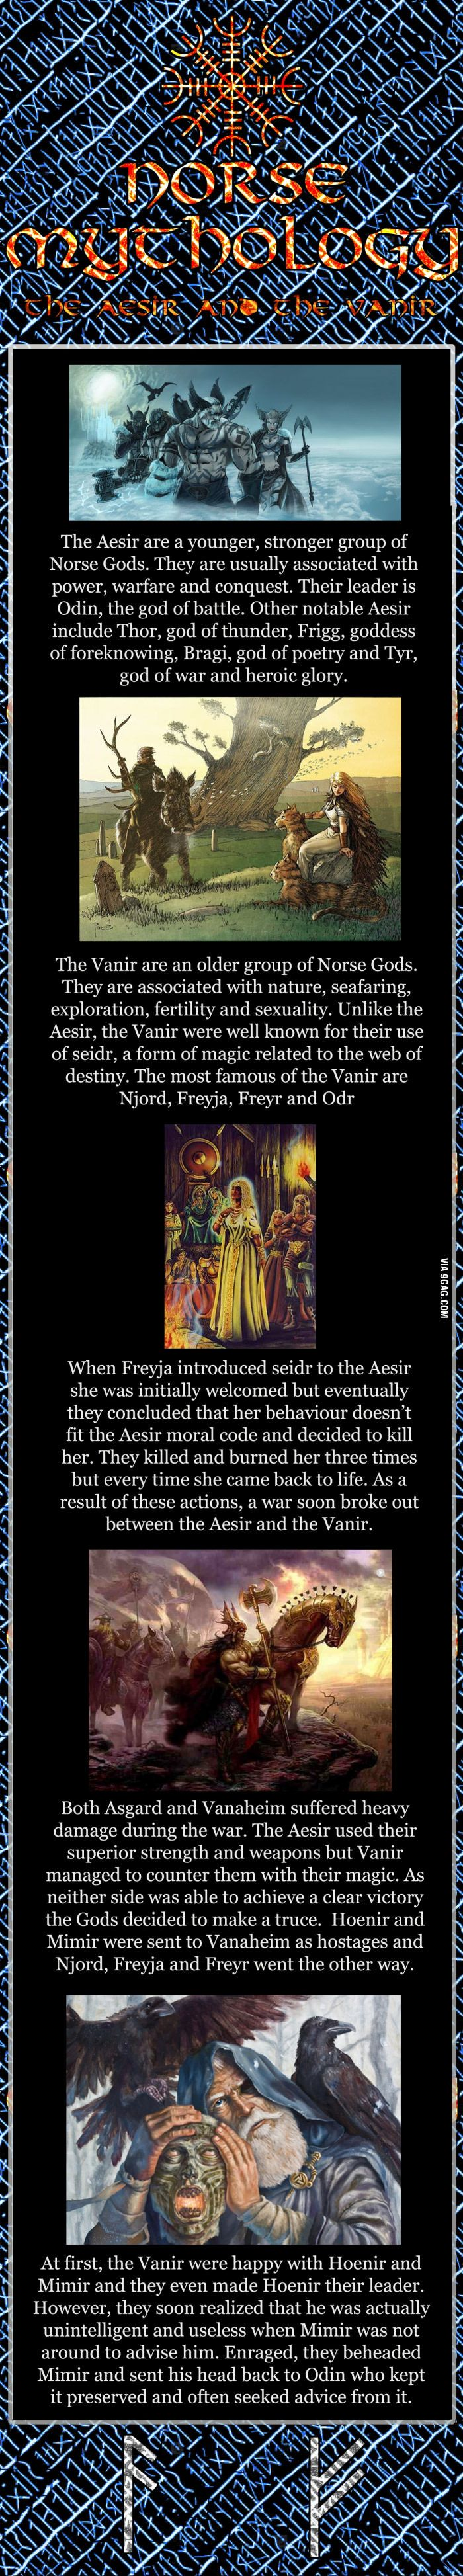 Norse mythology series - The Aesir and the Vanir